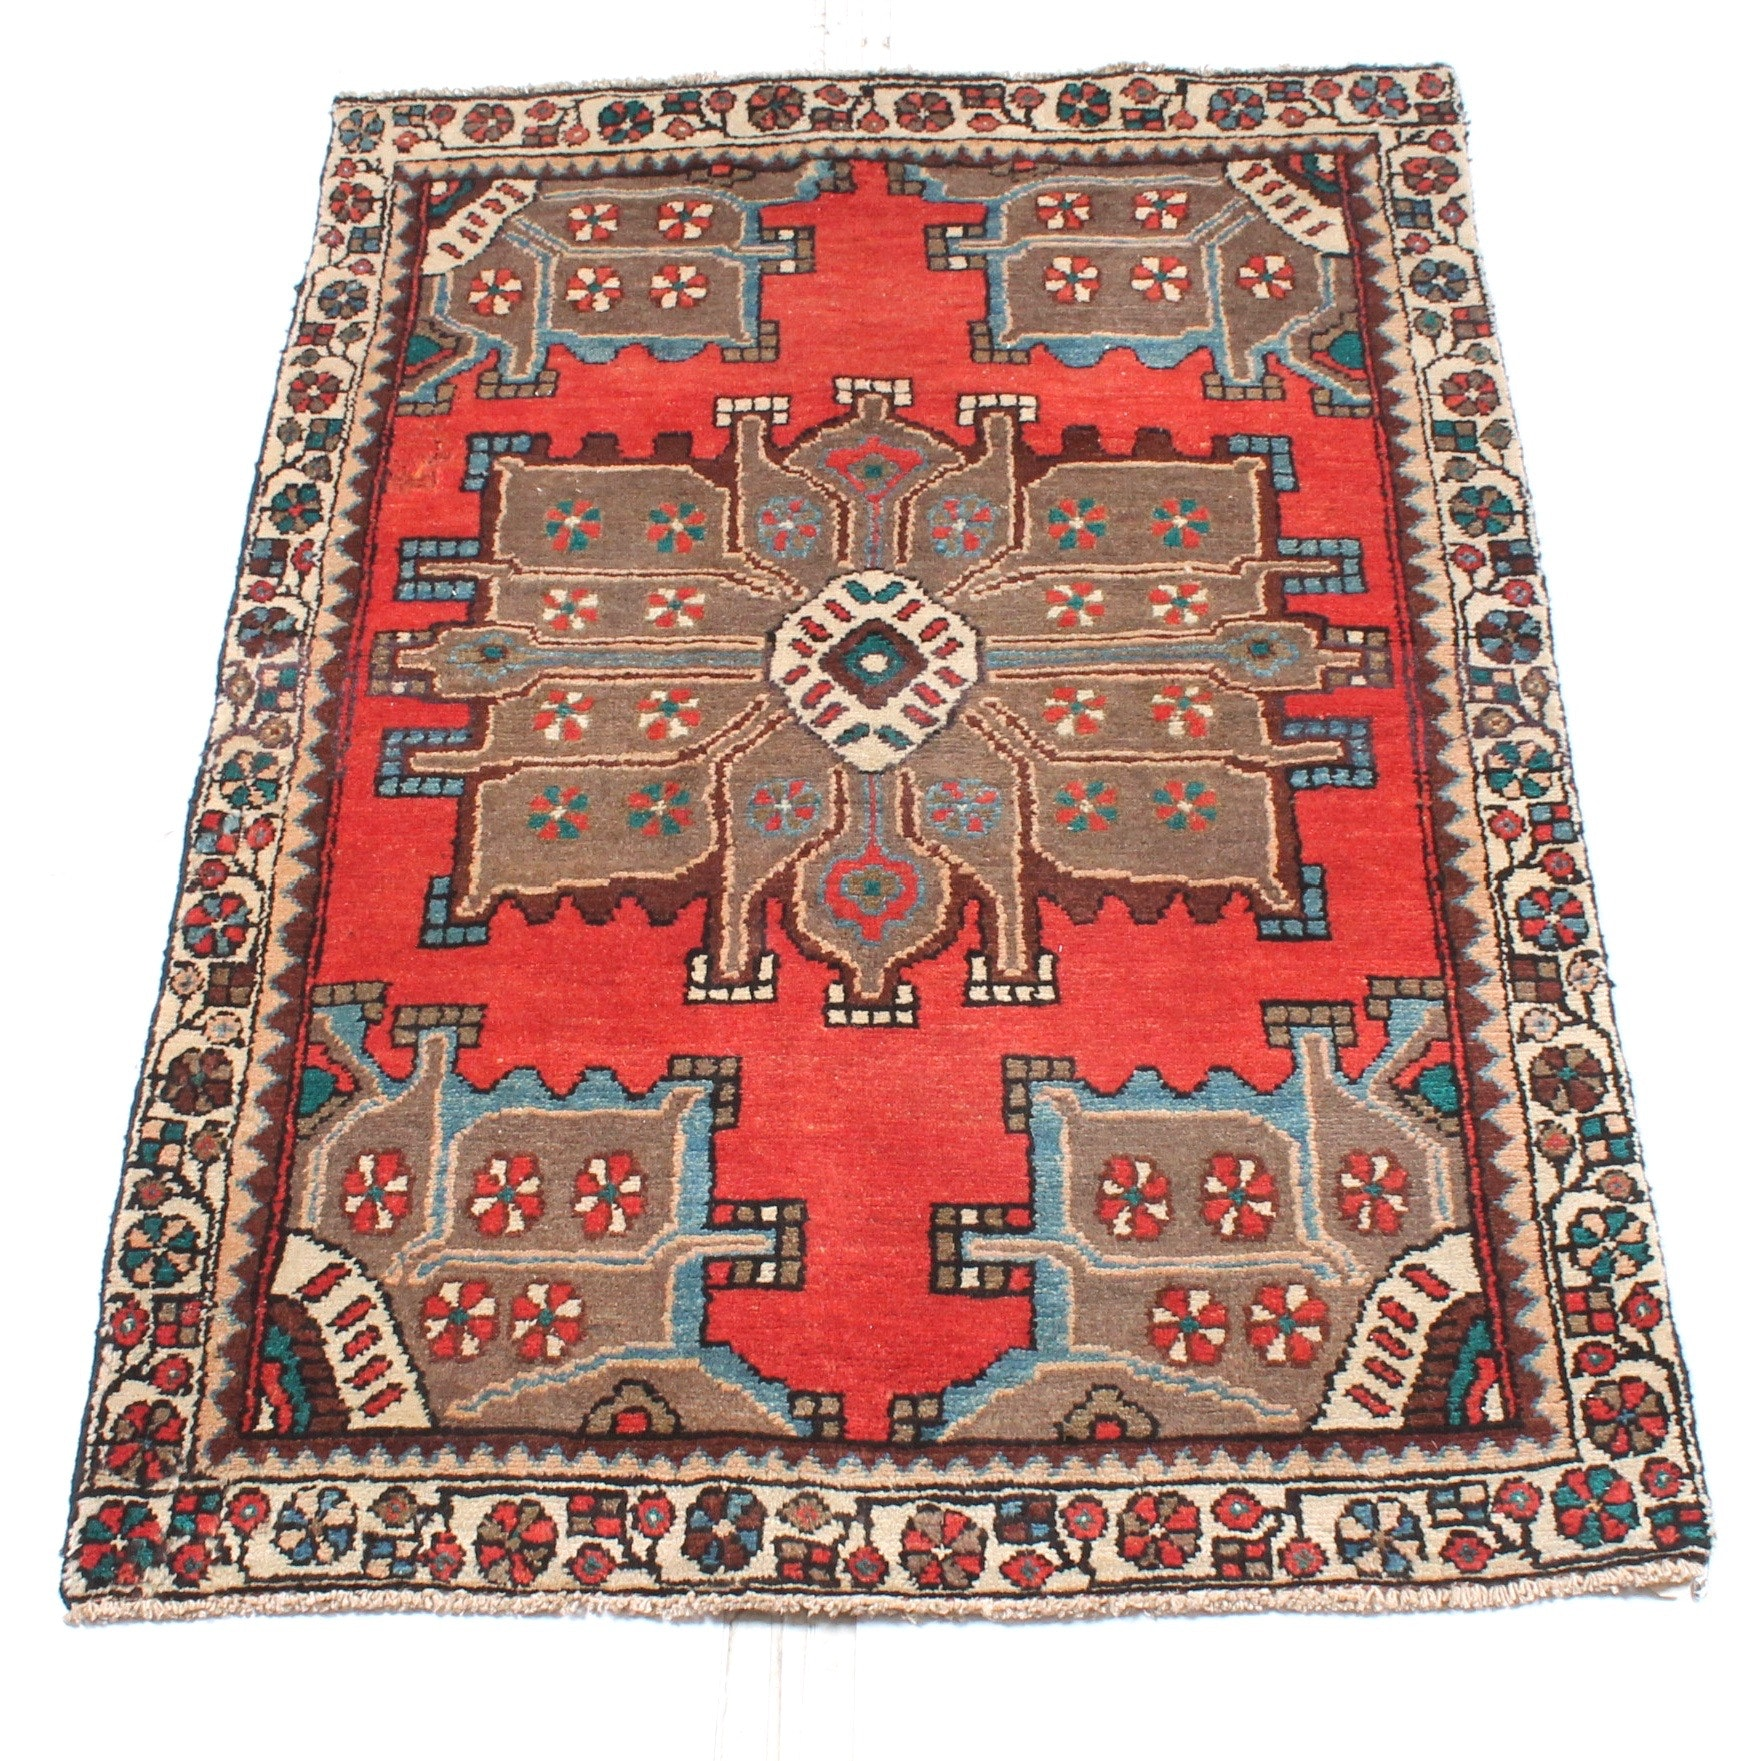 3' x 4' Vintage Hand-Knotted Persian Karaja Heriz Accent Rug